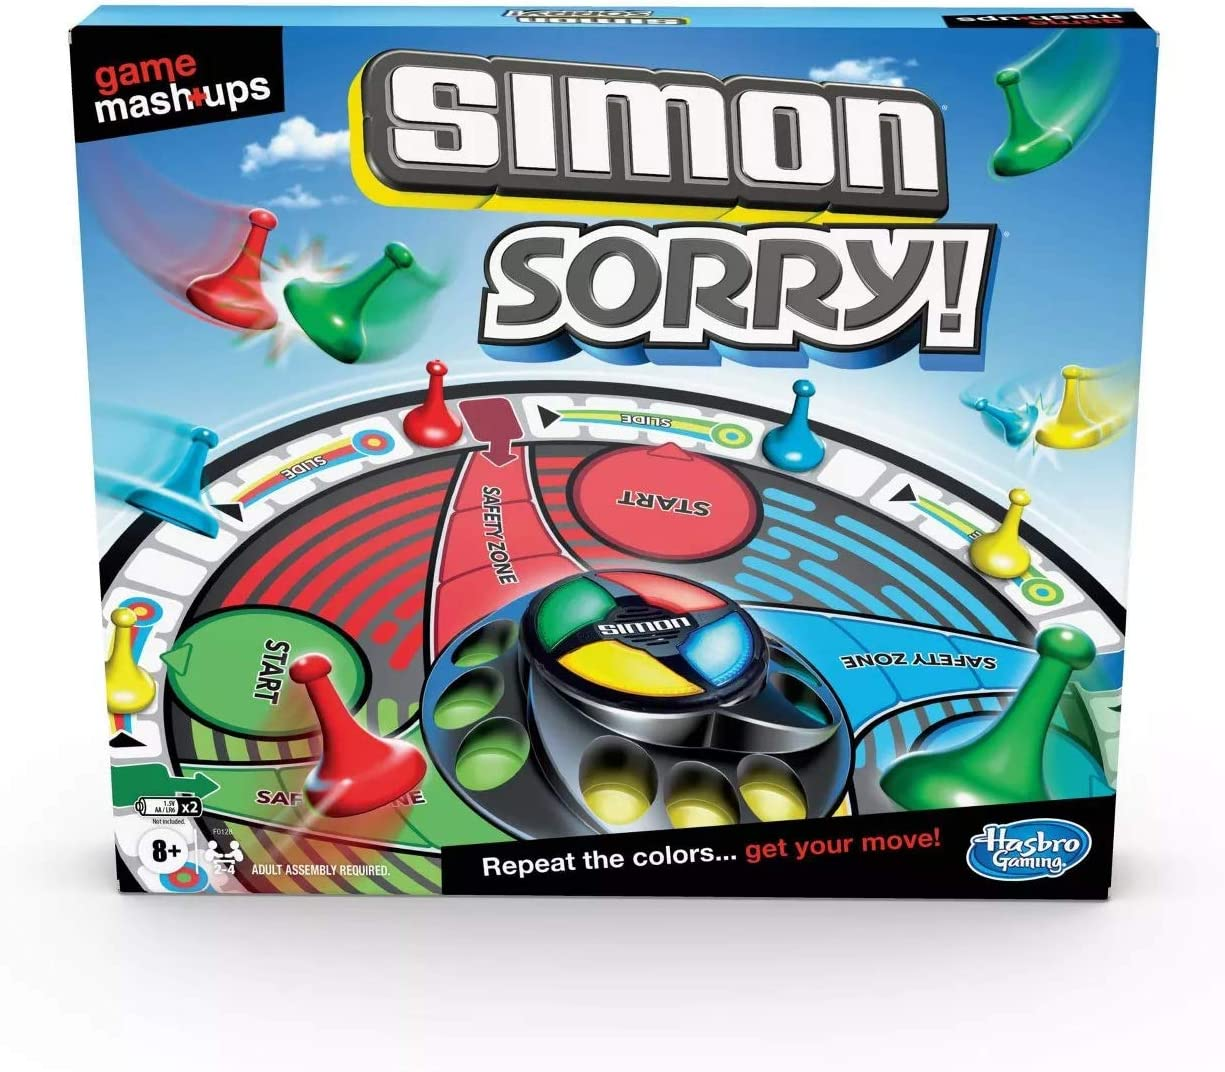 Game Mashups Simon Sorry! Game